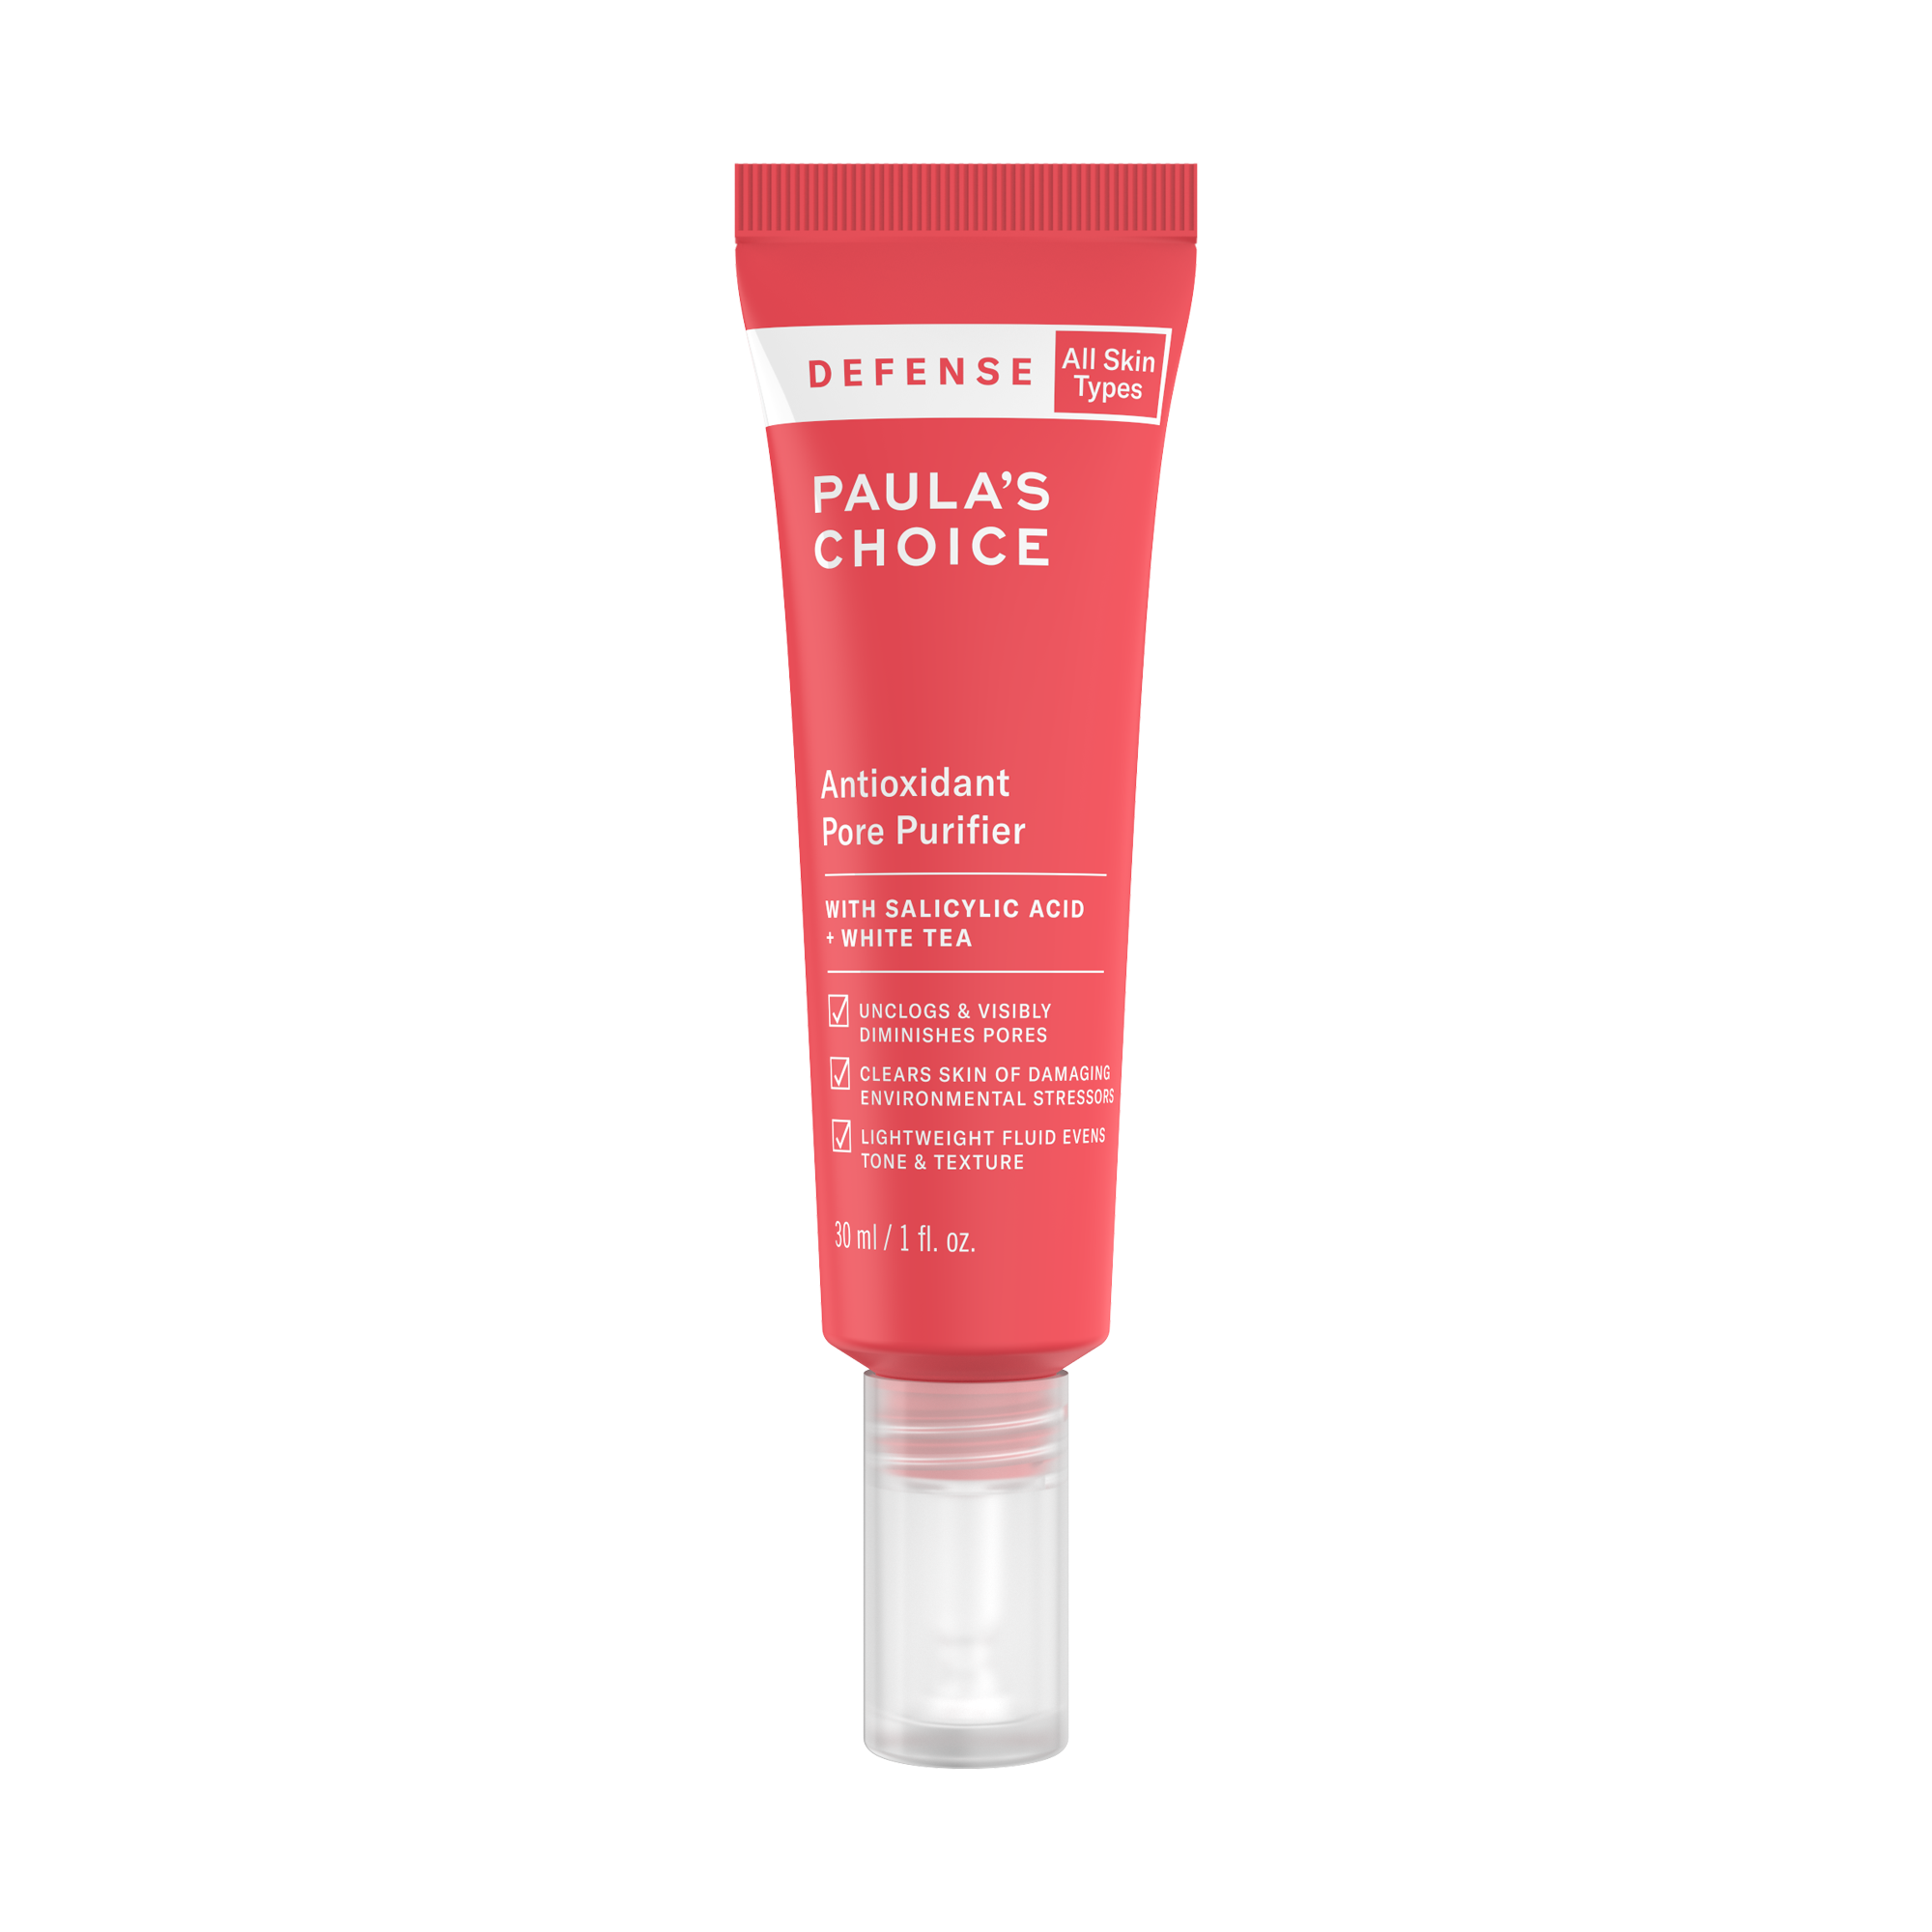 Antioxidant Pore Purifier